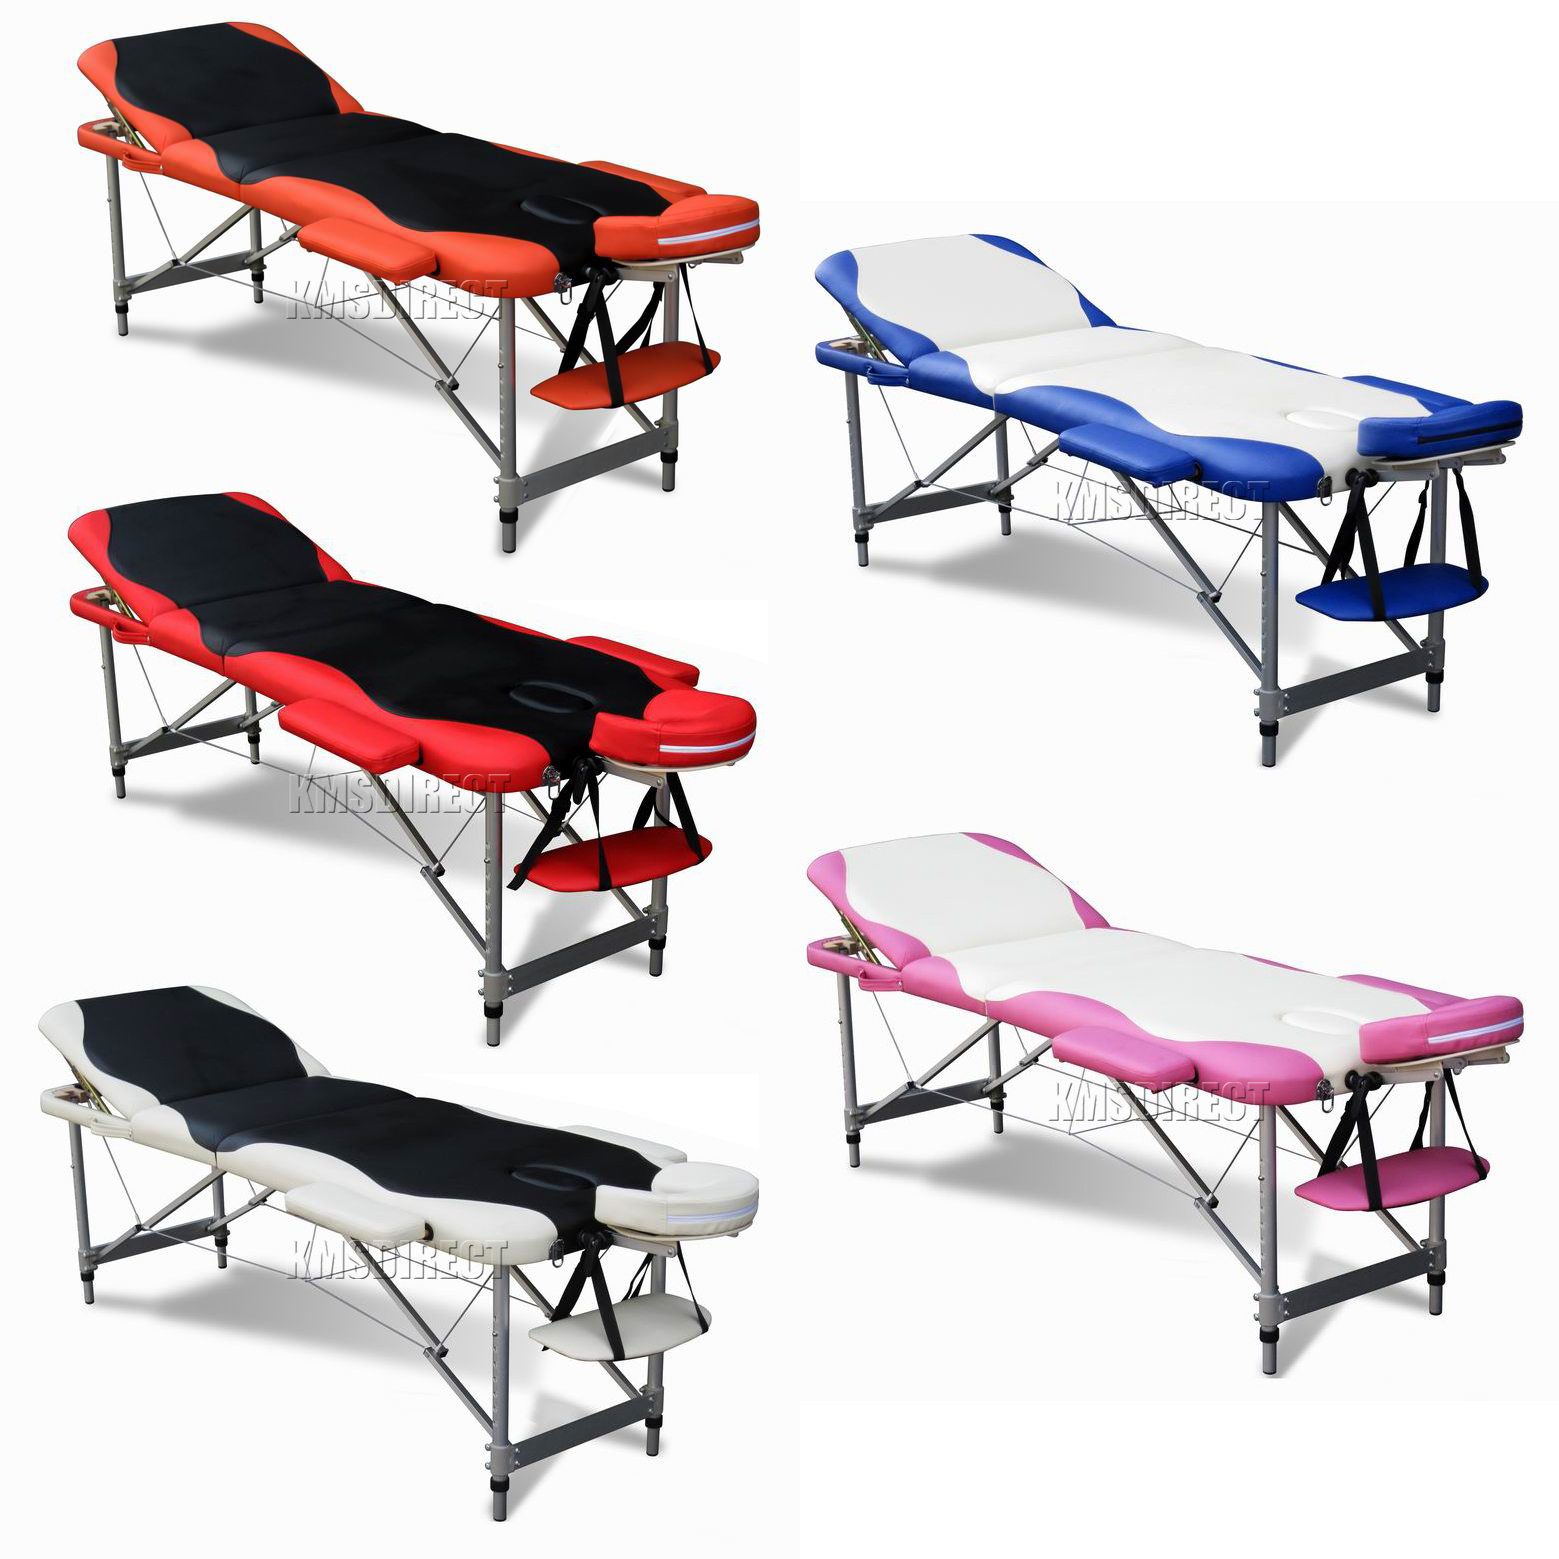 luxury portable folding massage table lightweight beauty salon therapy couch bed ebay. Black Bedroom Furniture Sets. Home Design Ideas